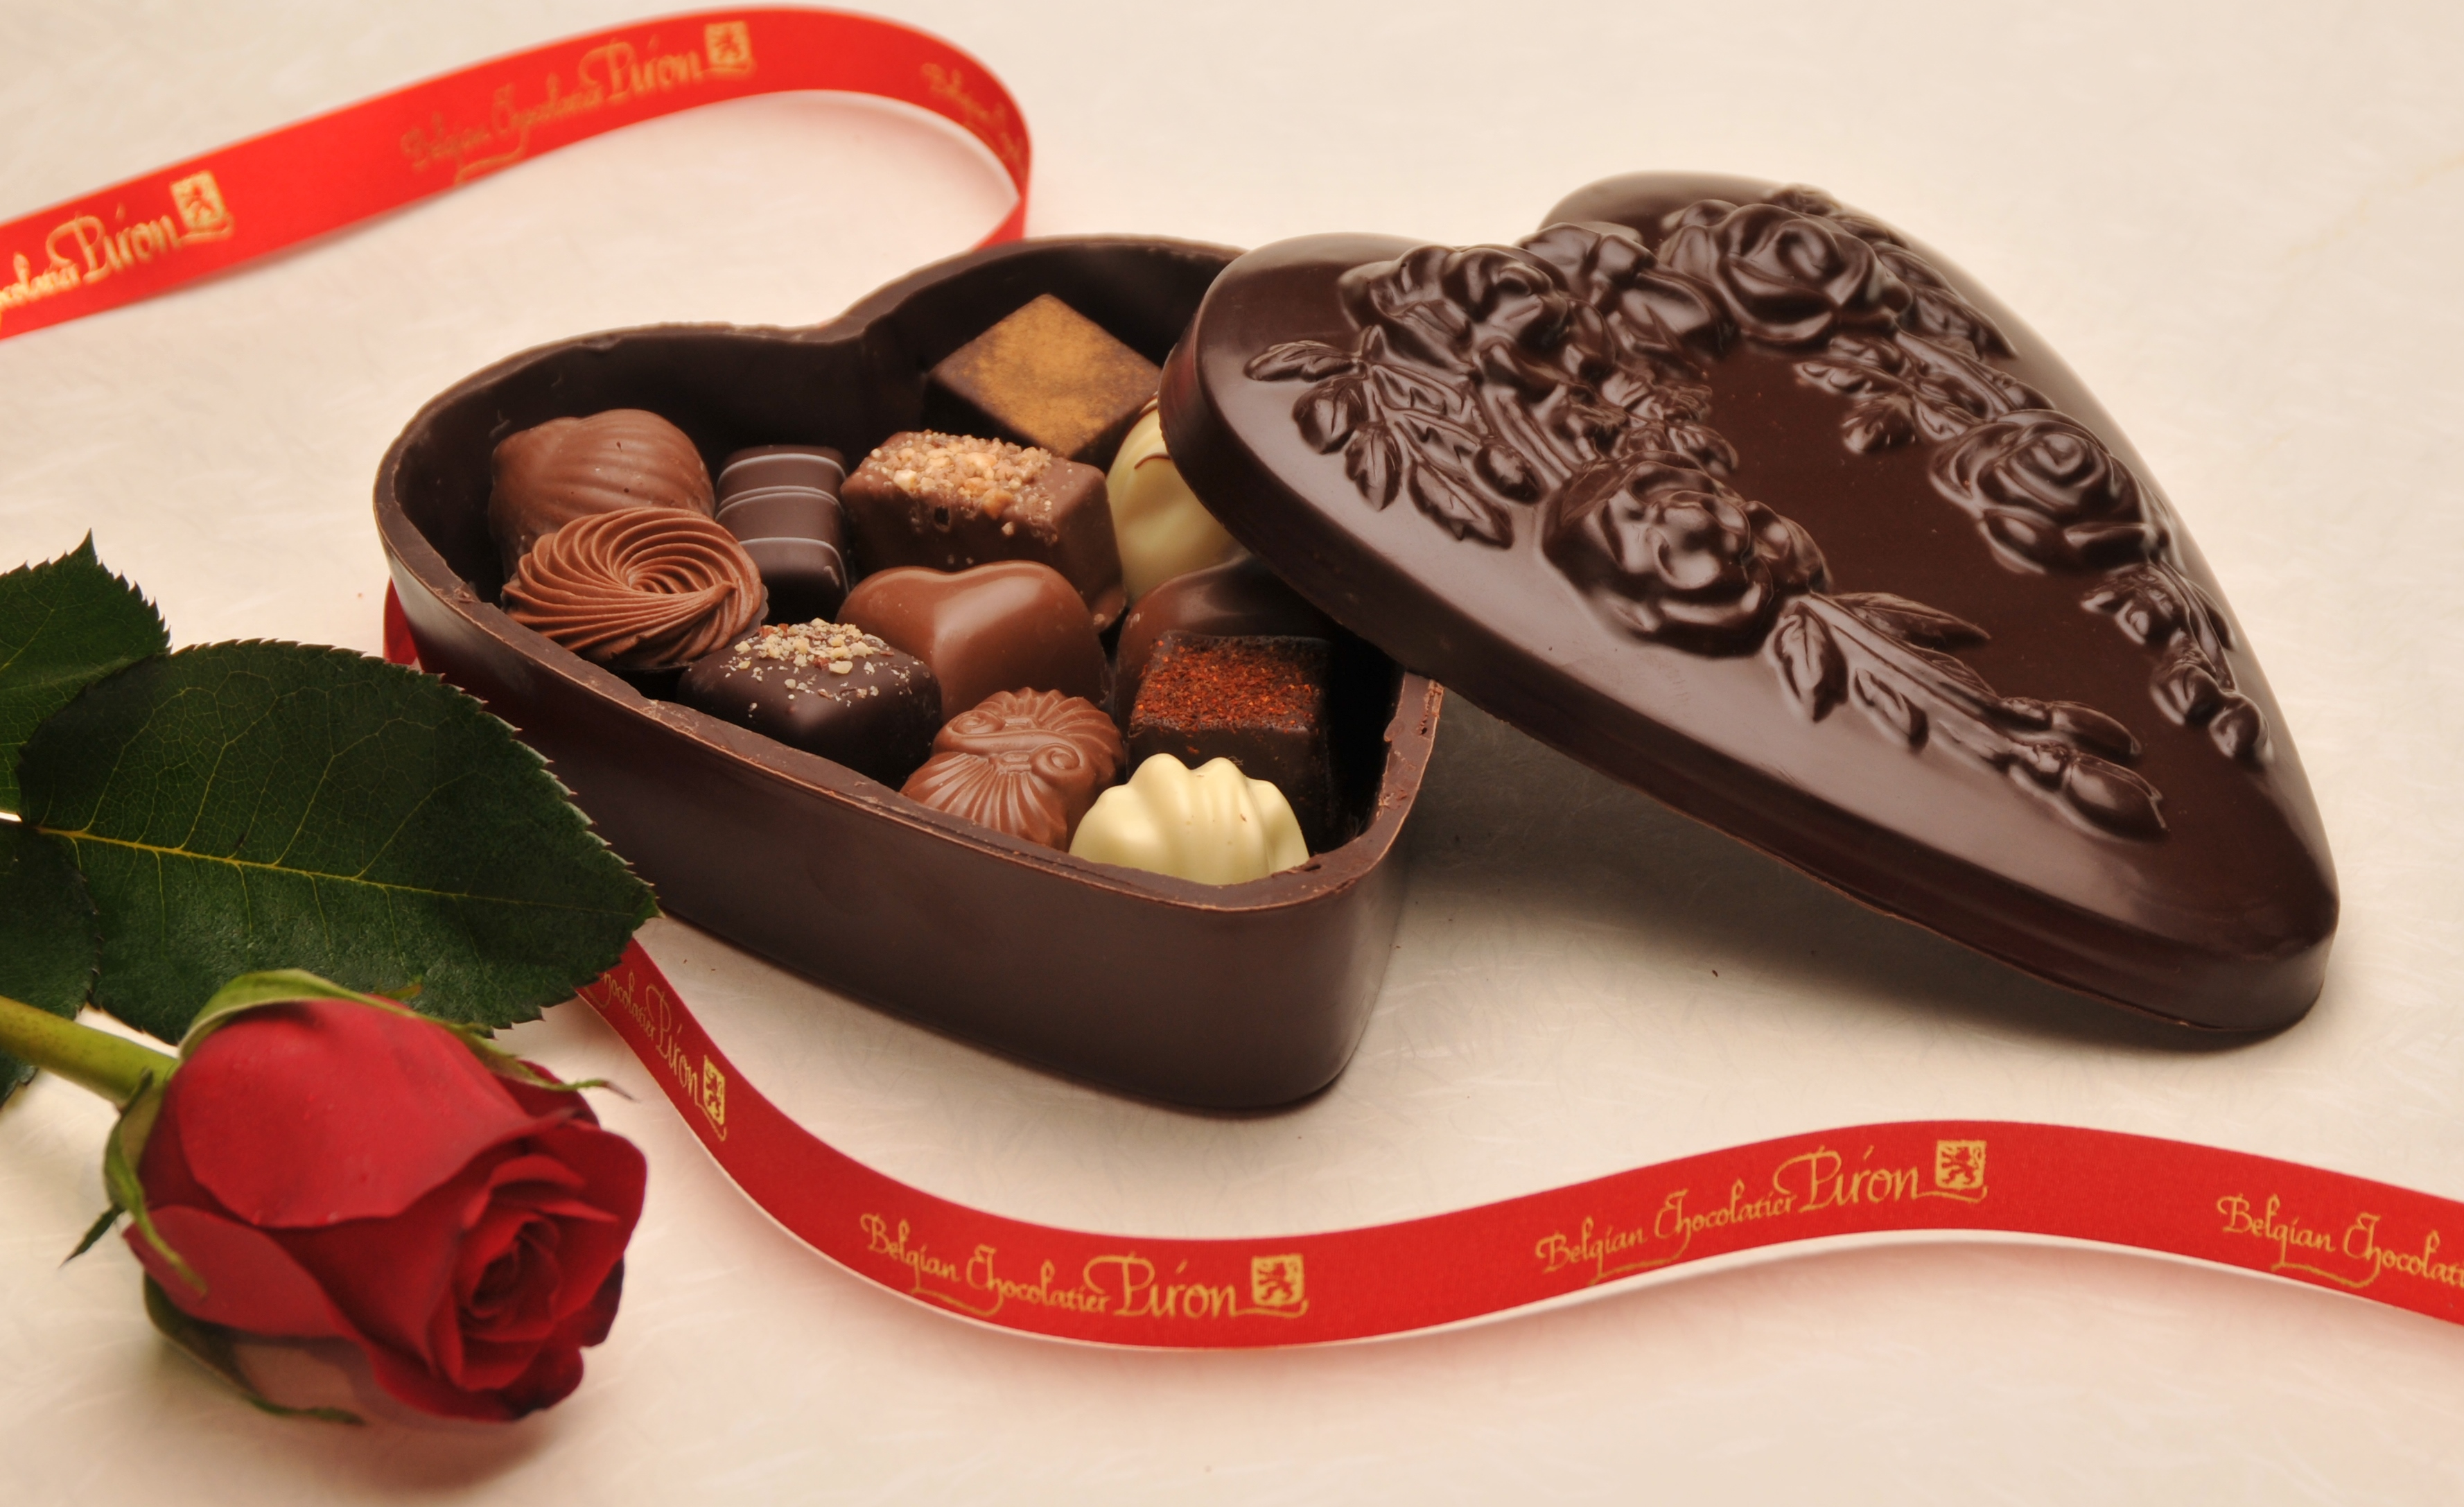 Chocolate Gift Box | Belgian Chocolatier Piron, Inc.